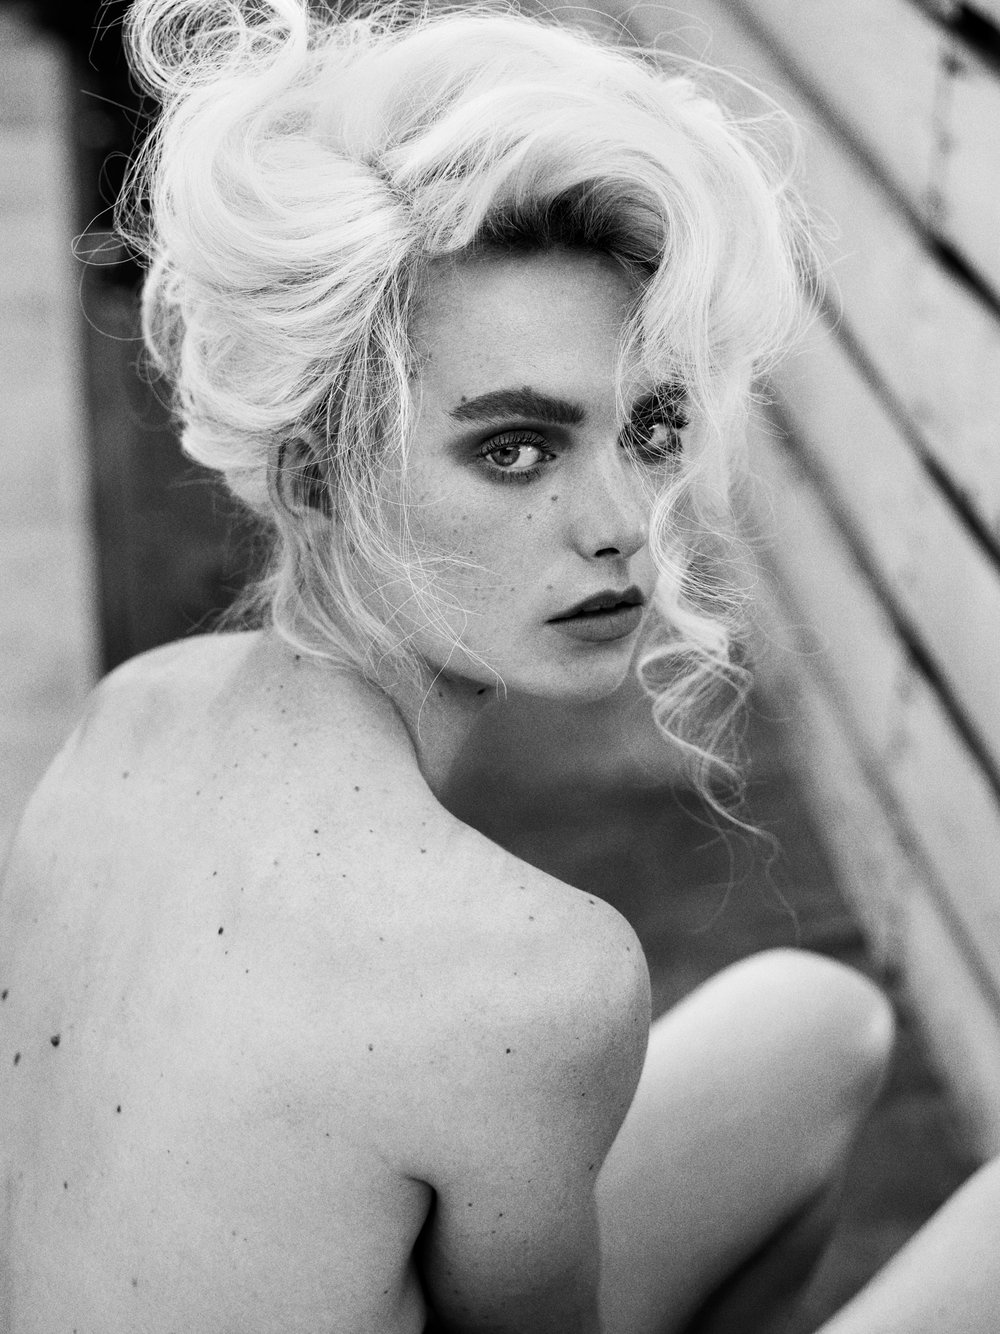 Jack-Eames-Ali-Pirzadeh-French-Hair-Beauty-Photography-Campaign-03.jpg